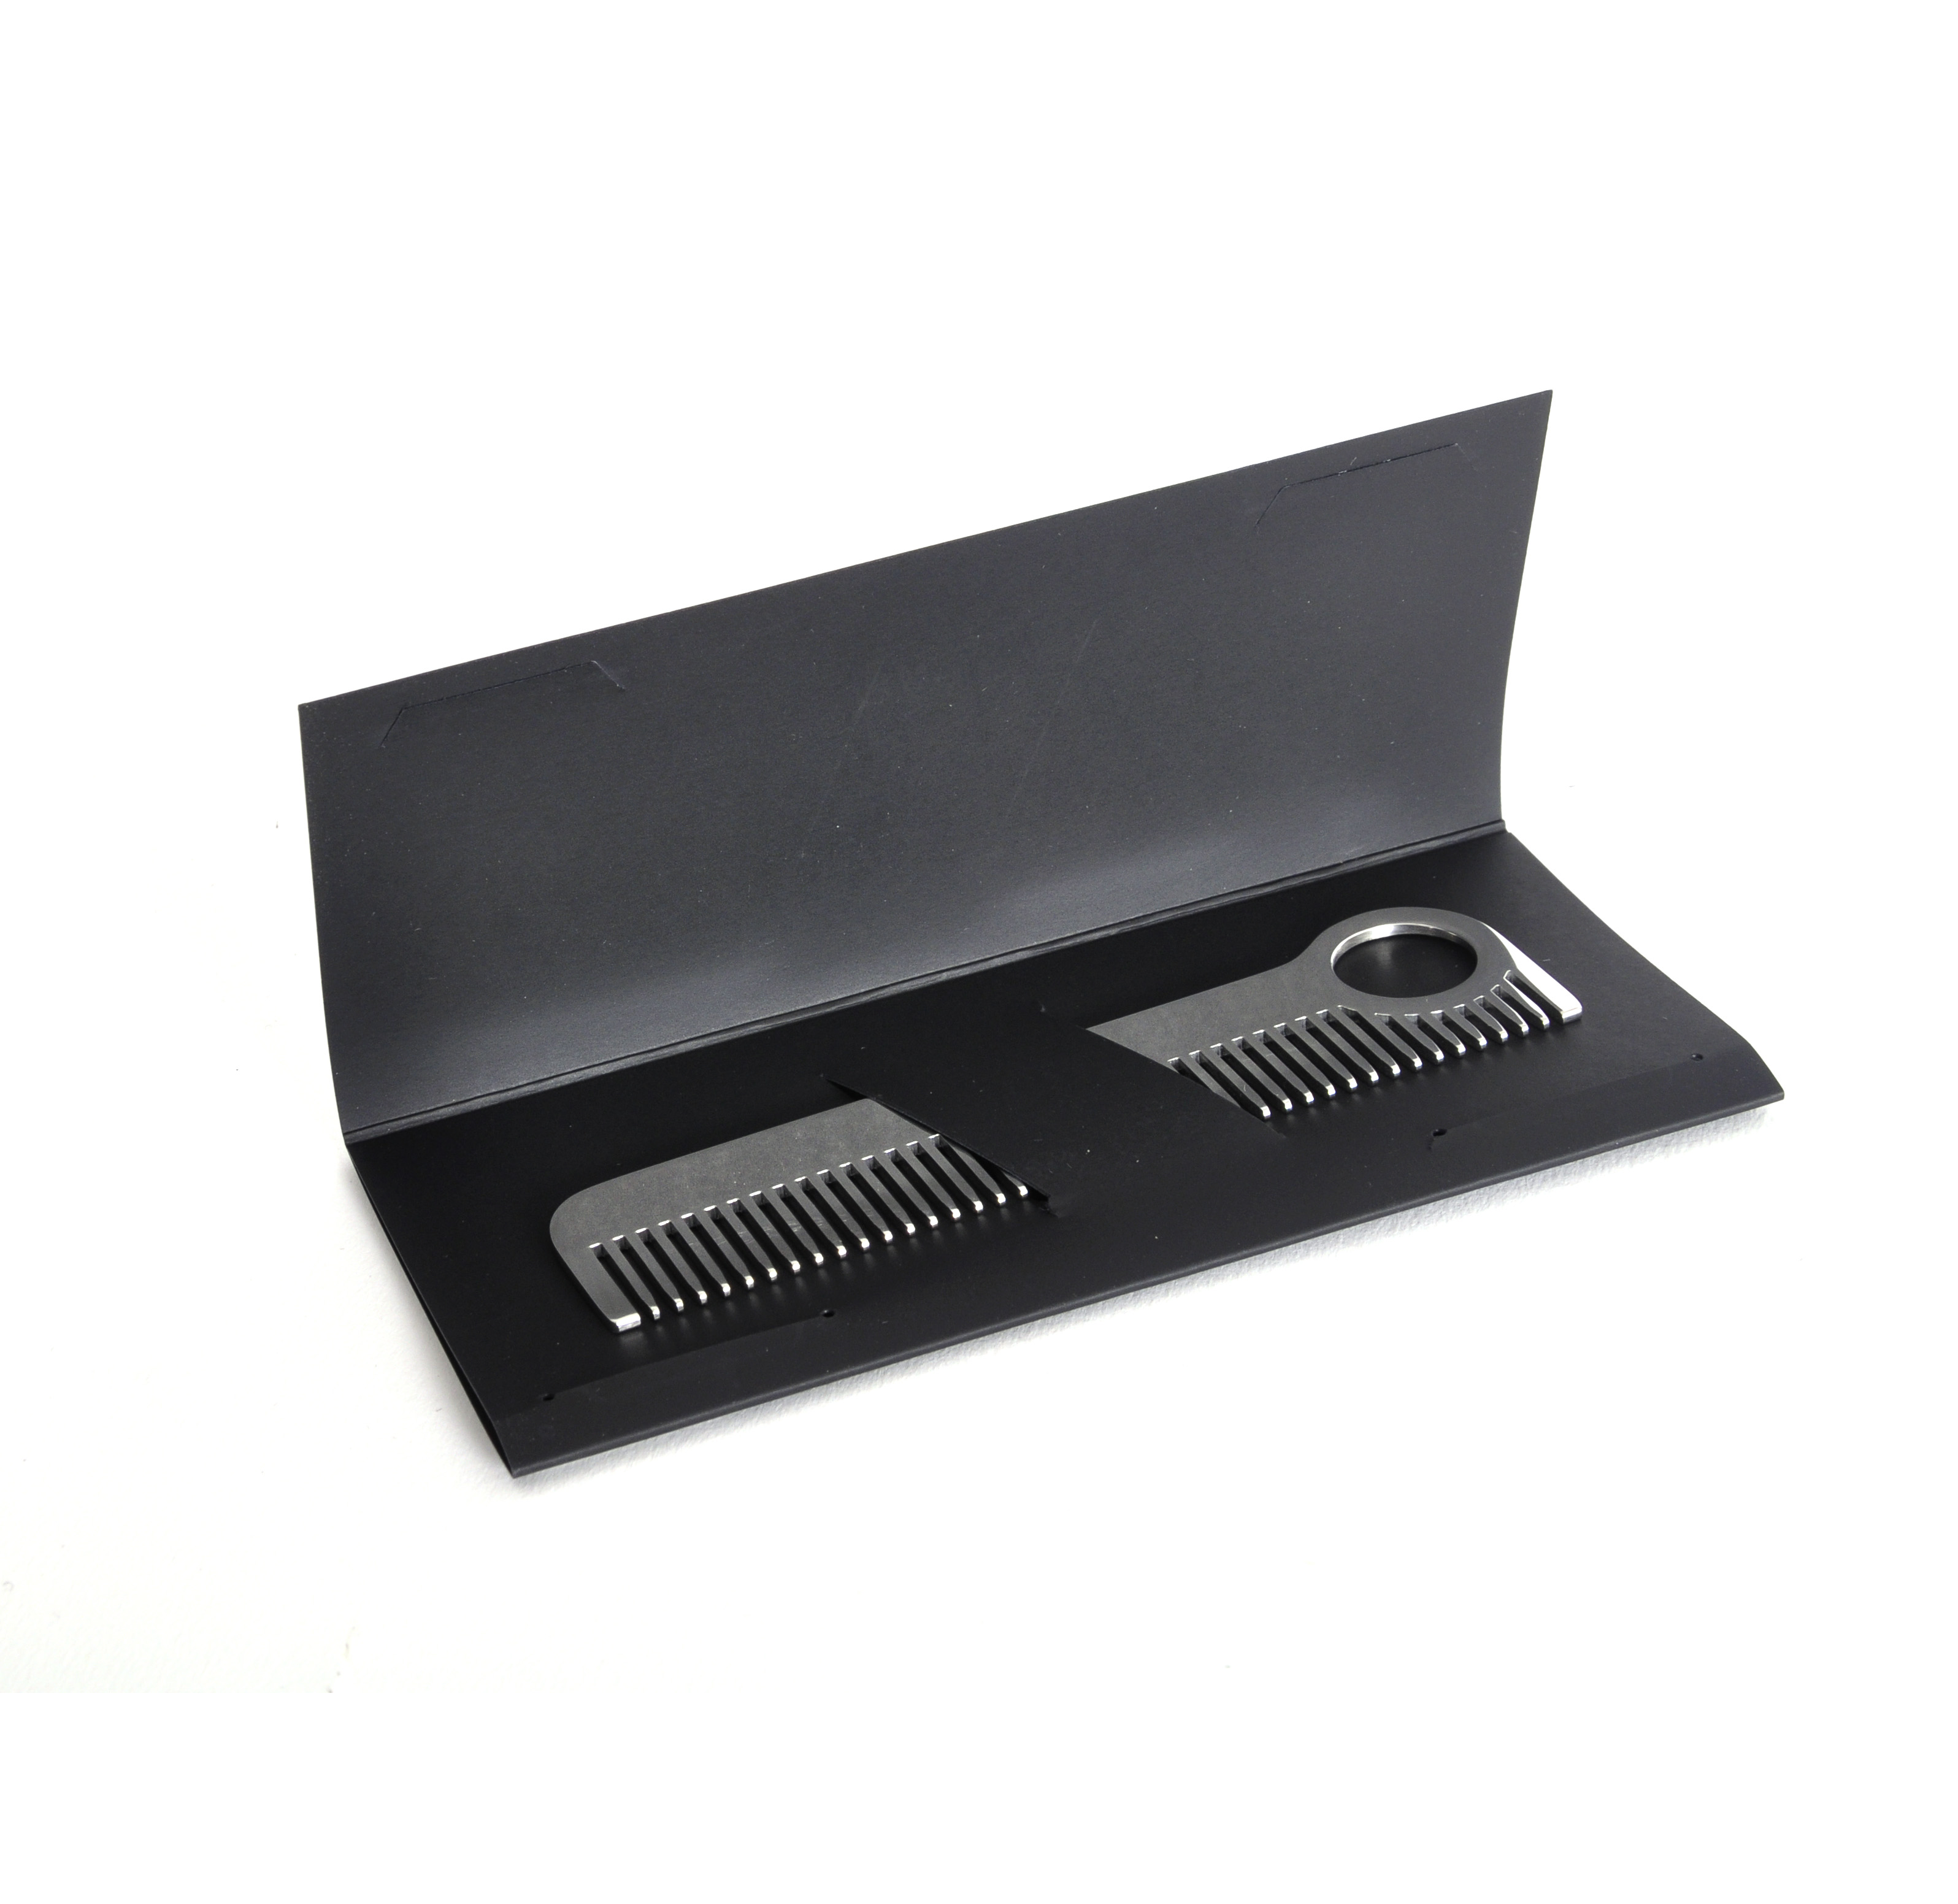 beard comb model no 1 mirror steel moustache and beard grooming tool. Black Bedroom Furniture Sets. Home Design Ideas